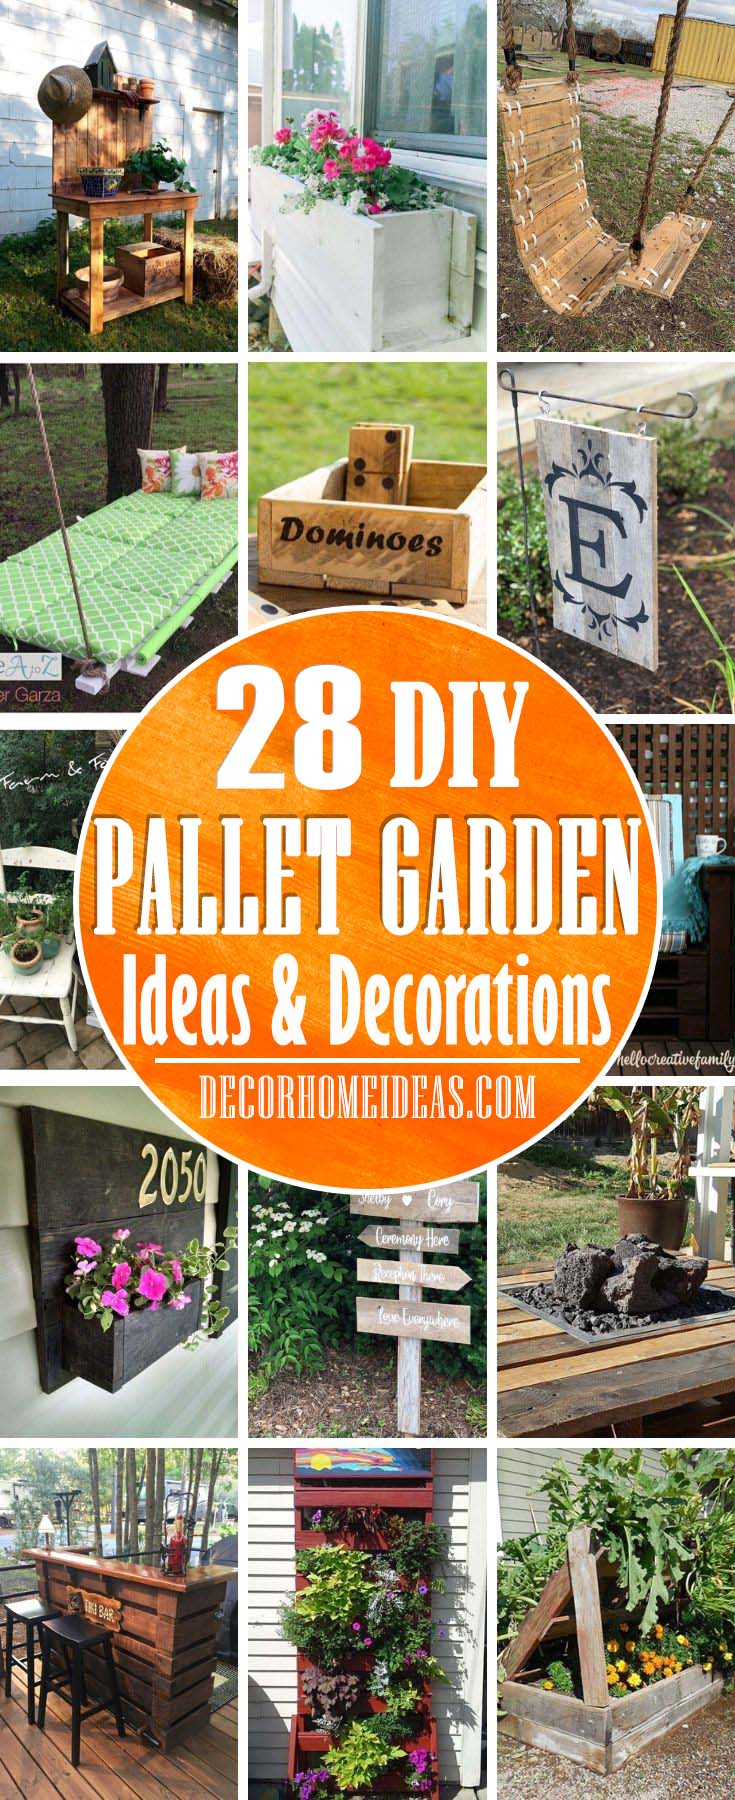 Best DIY Pallet Garden Ideas Need a budget-friendly garden swing or planter? Something that you can do very quickly and is really easy, but still looks good? Here are the best pallet garden ideas. #diy #pallet #garden #decorhomeideas